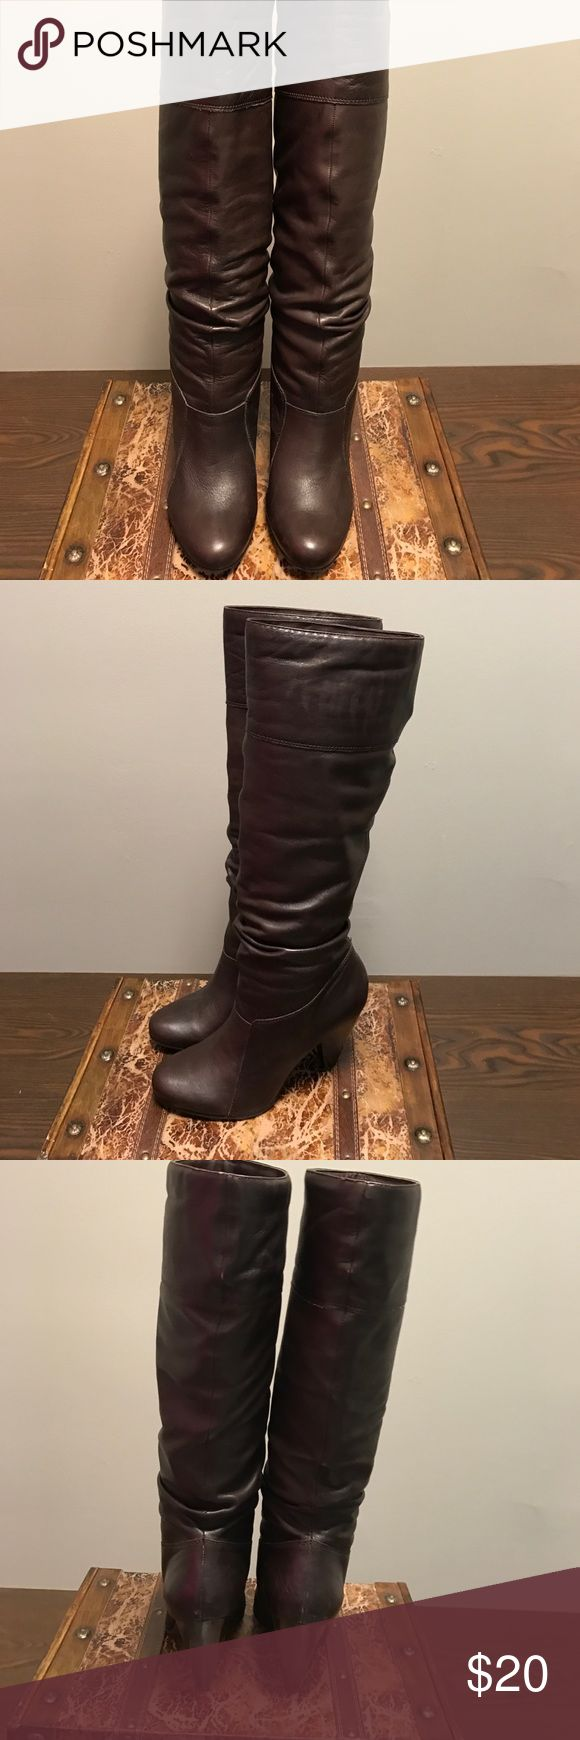 Jessica Simpson Boots Jessica Simpson Boots - Size 8.5 - brown Jessica Simpson Shoes